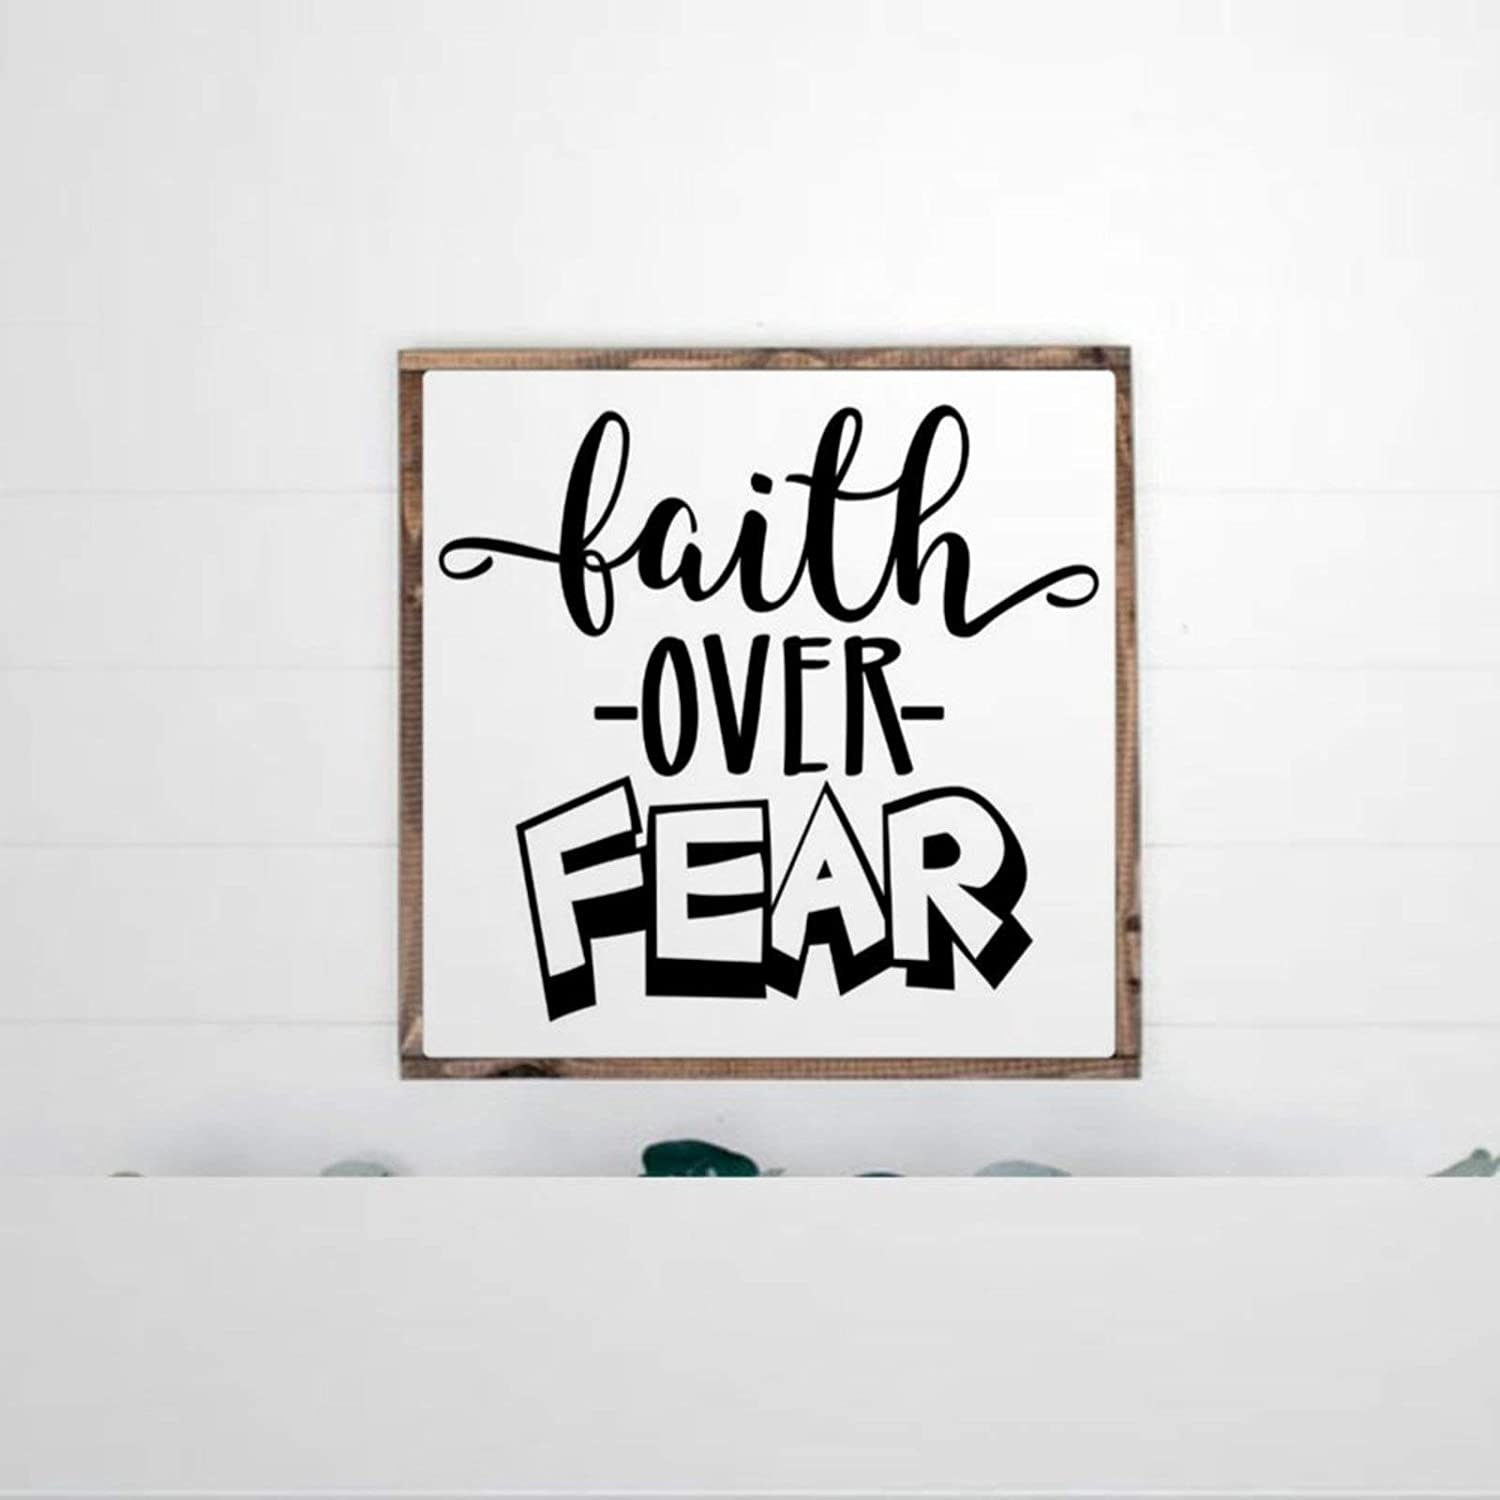 DONL9BAUER Framed Wooden Sign Faith Over Fear Wall Hanging Bible Verse Wood Sign, Scripture, Christian, Inspirational Farmhouse Home Decor Wall Art for Living Room